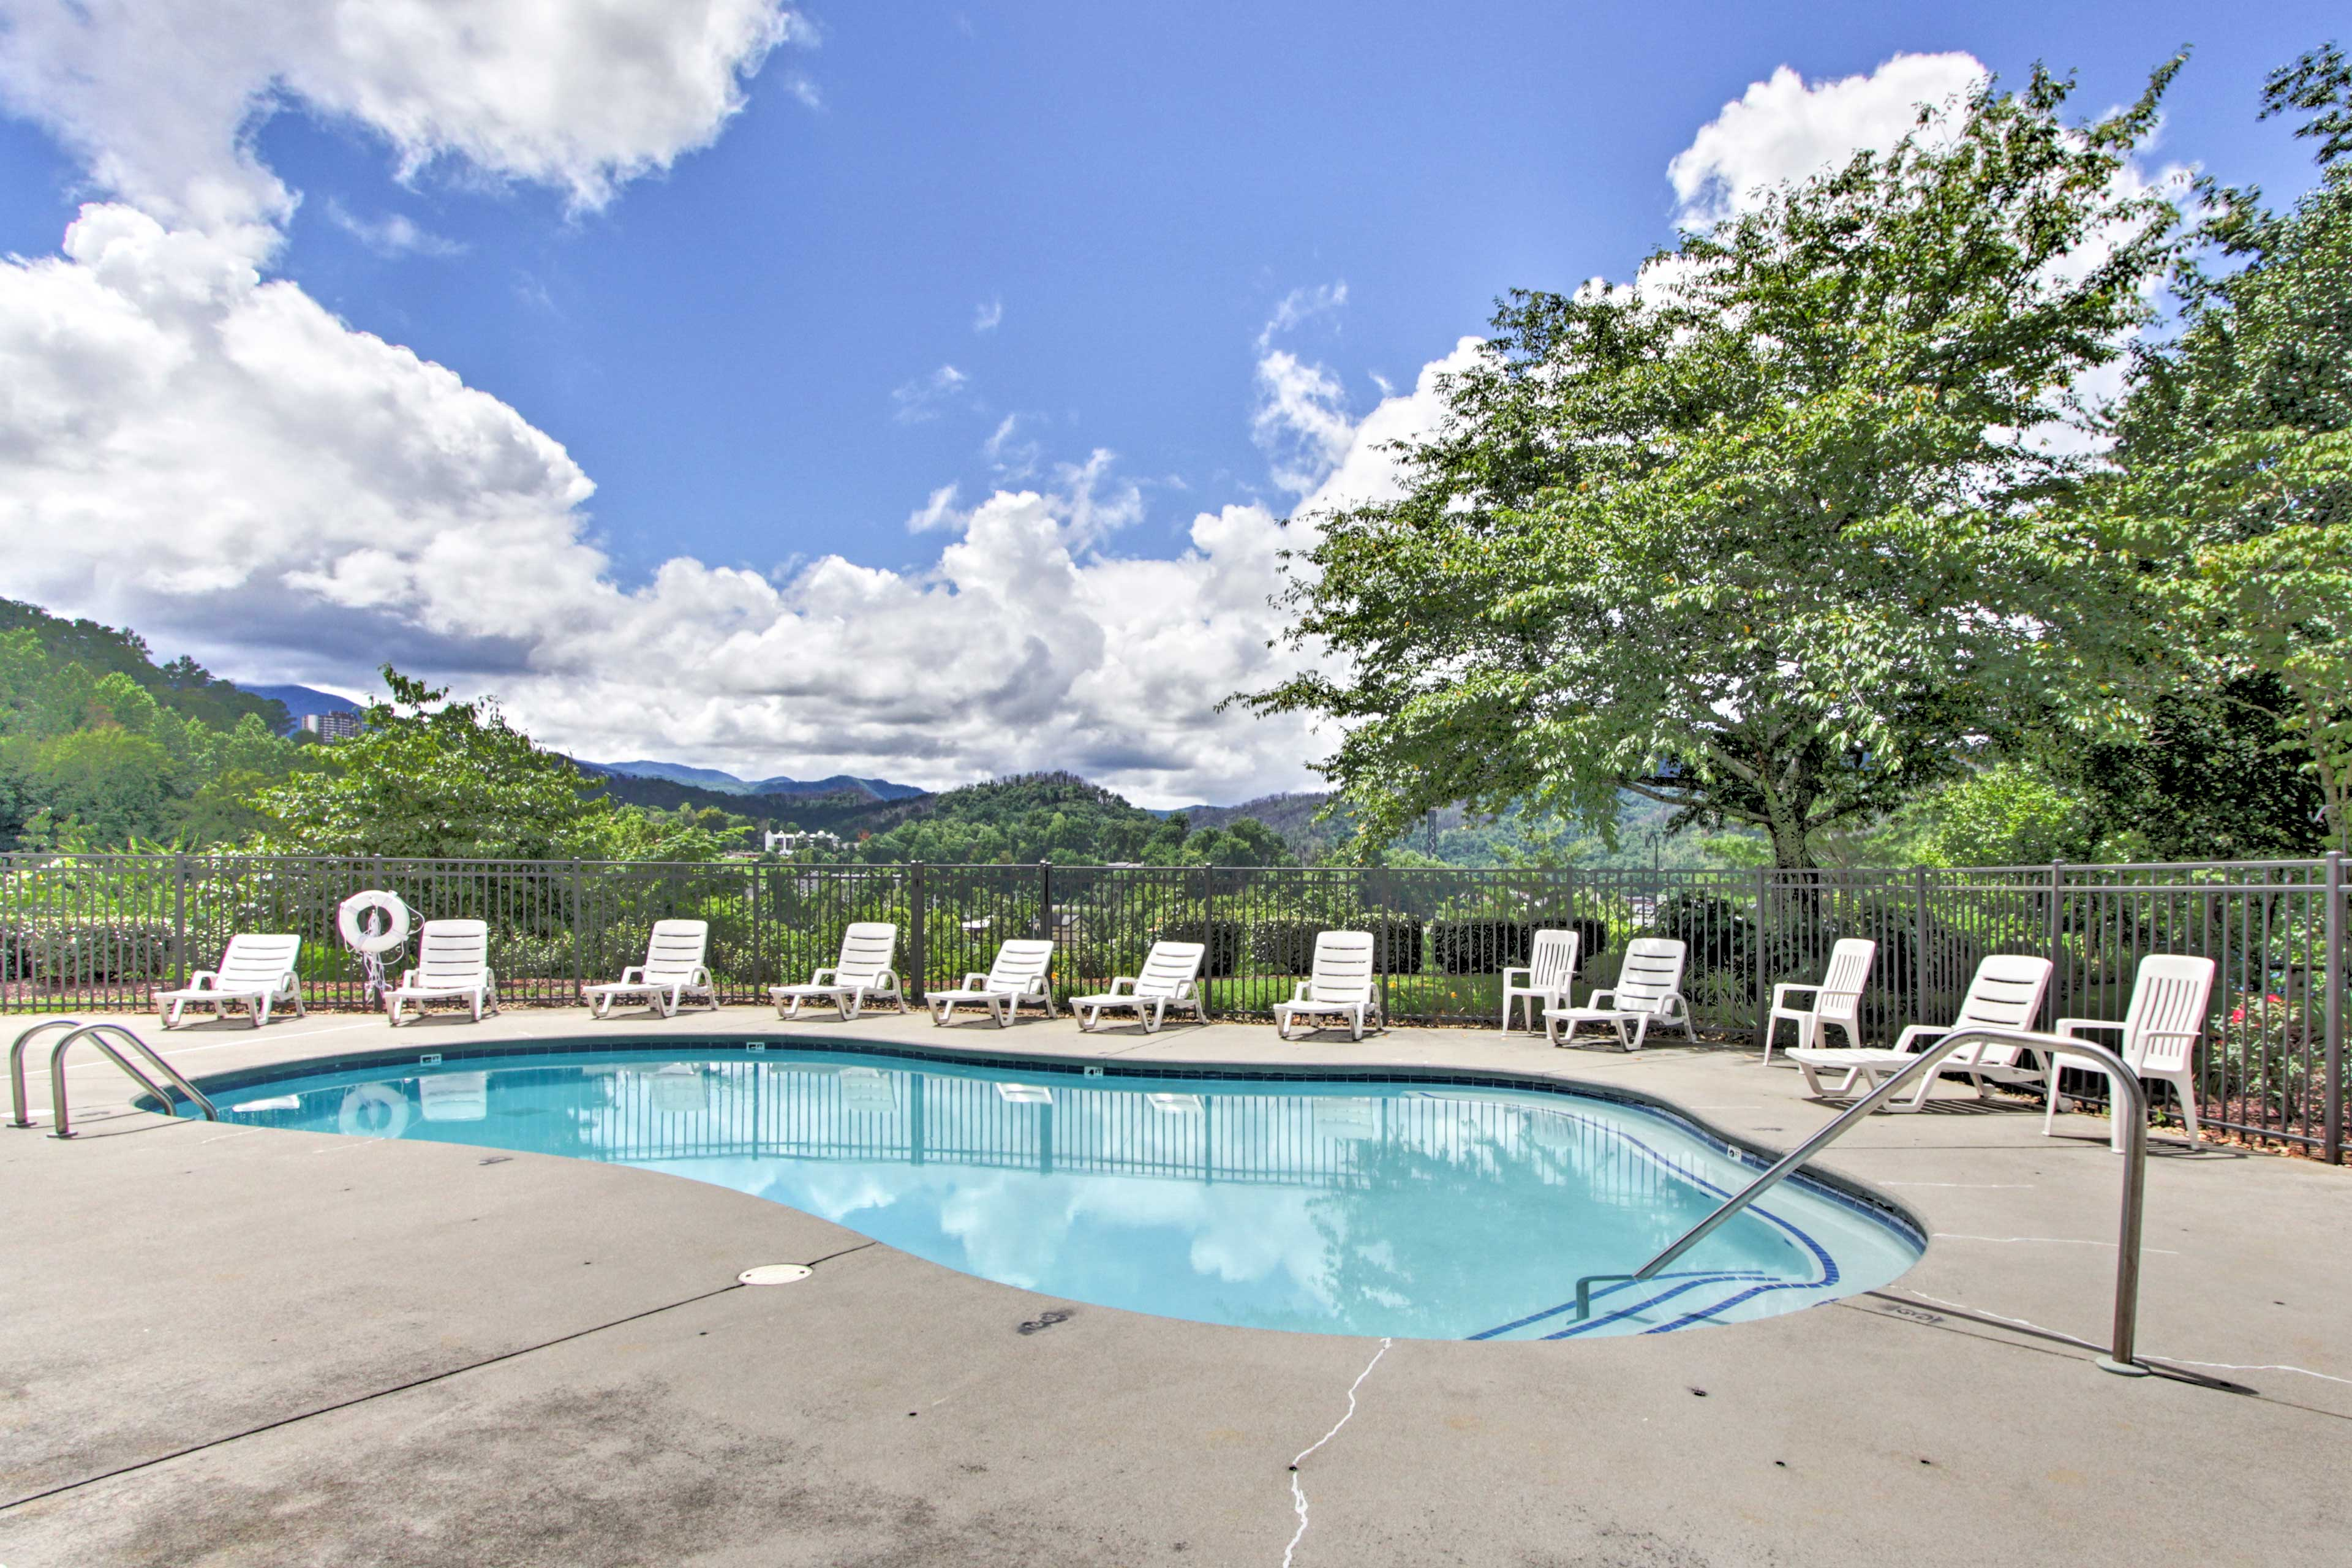 Stake out a chair to lounge by the pool & soak up some rays.